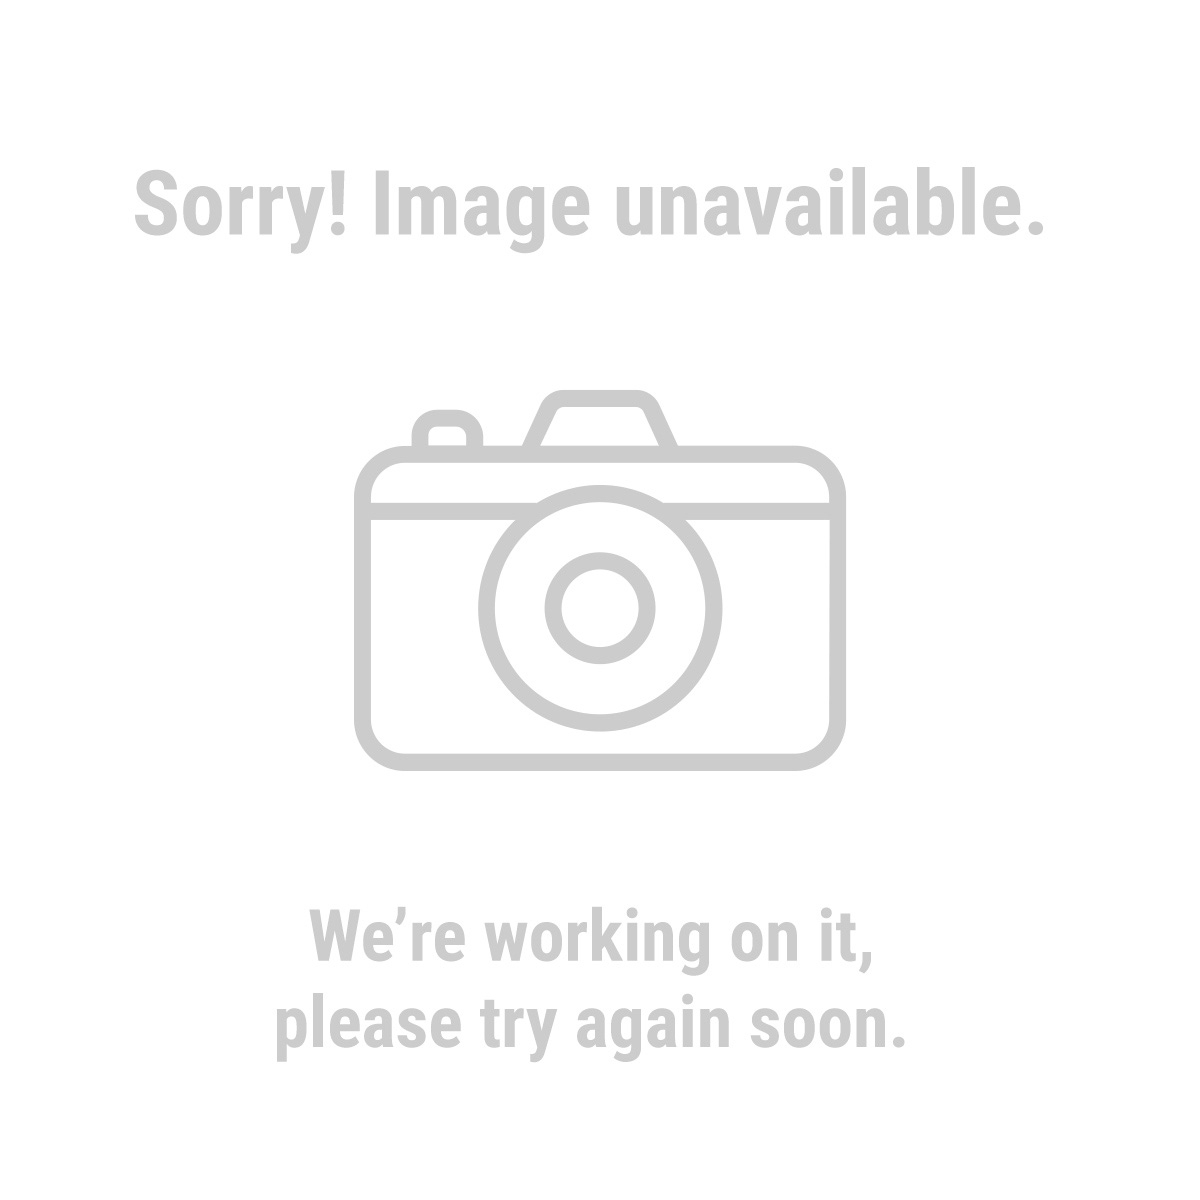 HFT 66495 25 Ft. 10 Gauge Triple Tap Extension Cord